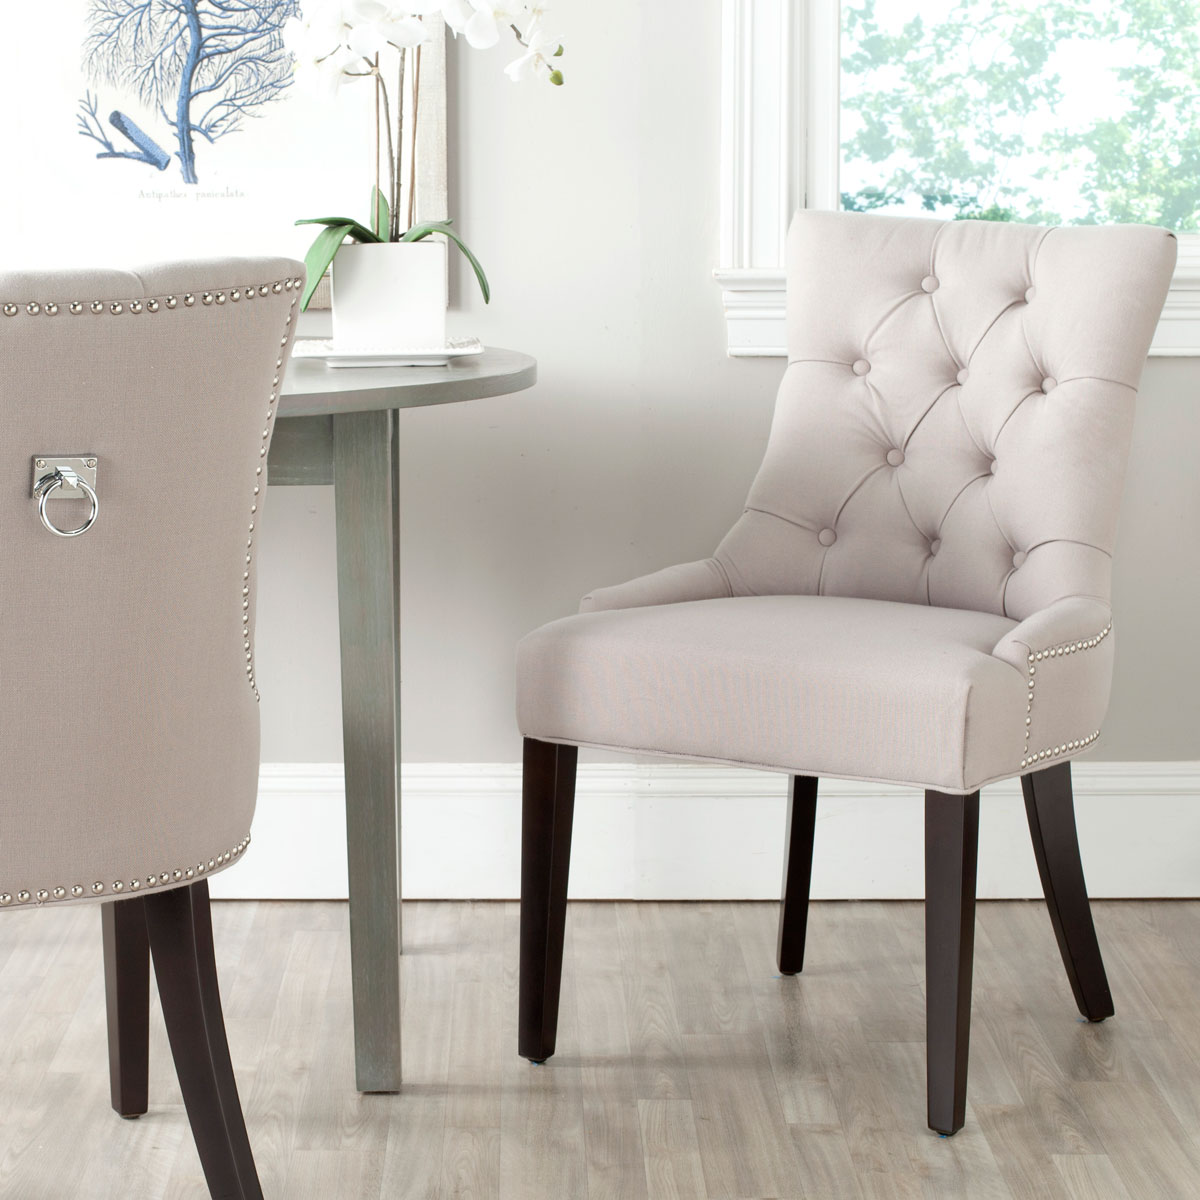 MCR4716A-SET2 Dining Chairs - Furniture by Safavieh